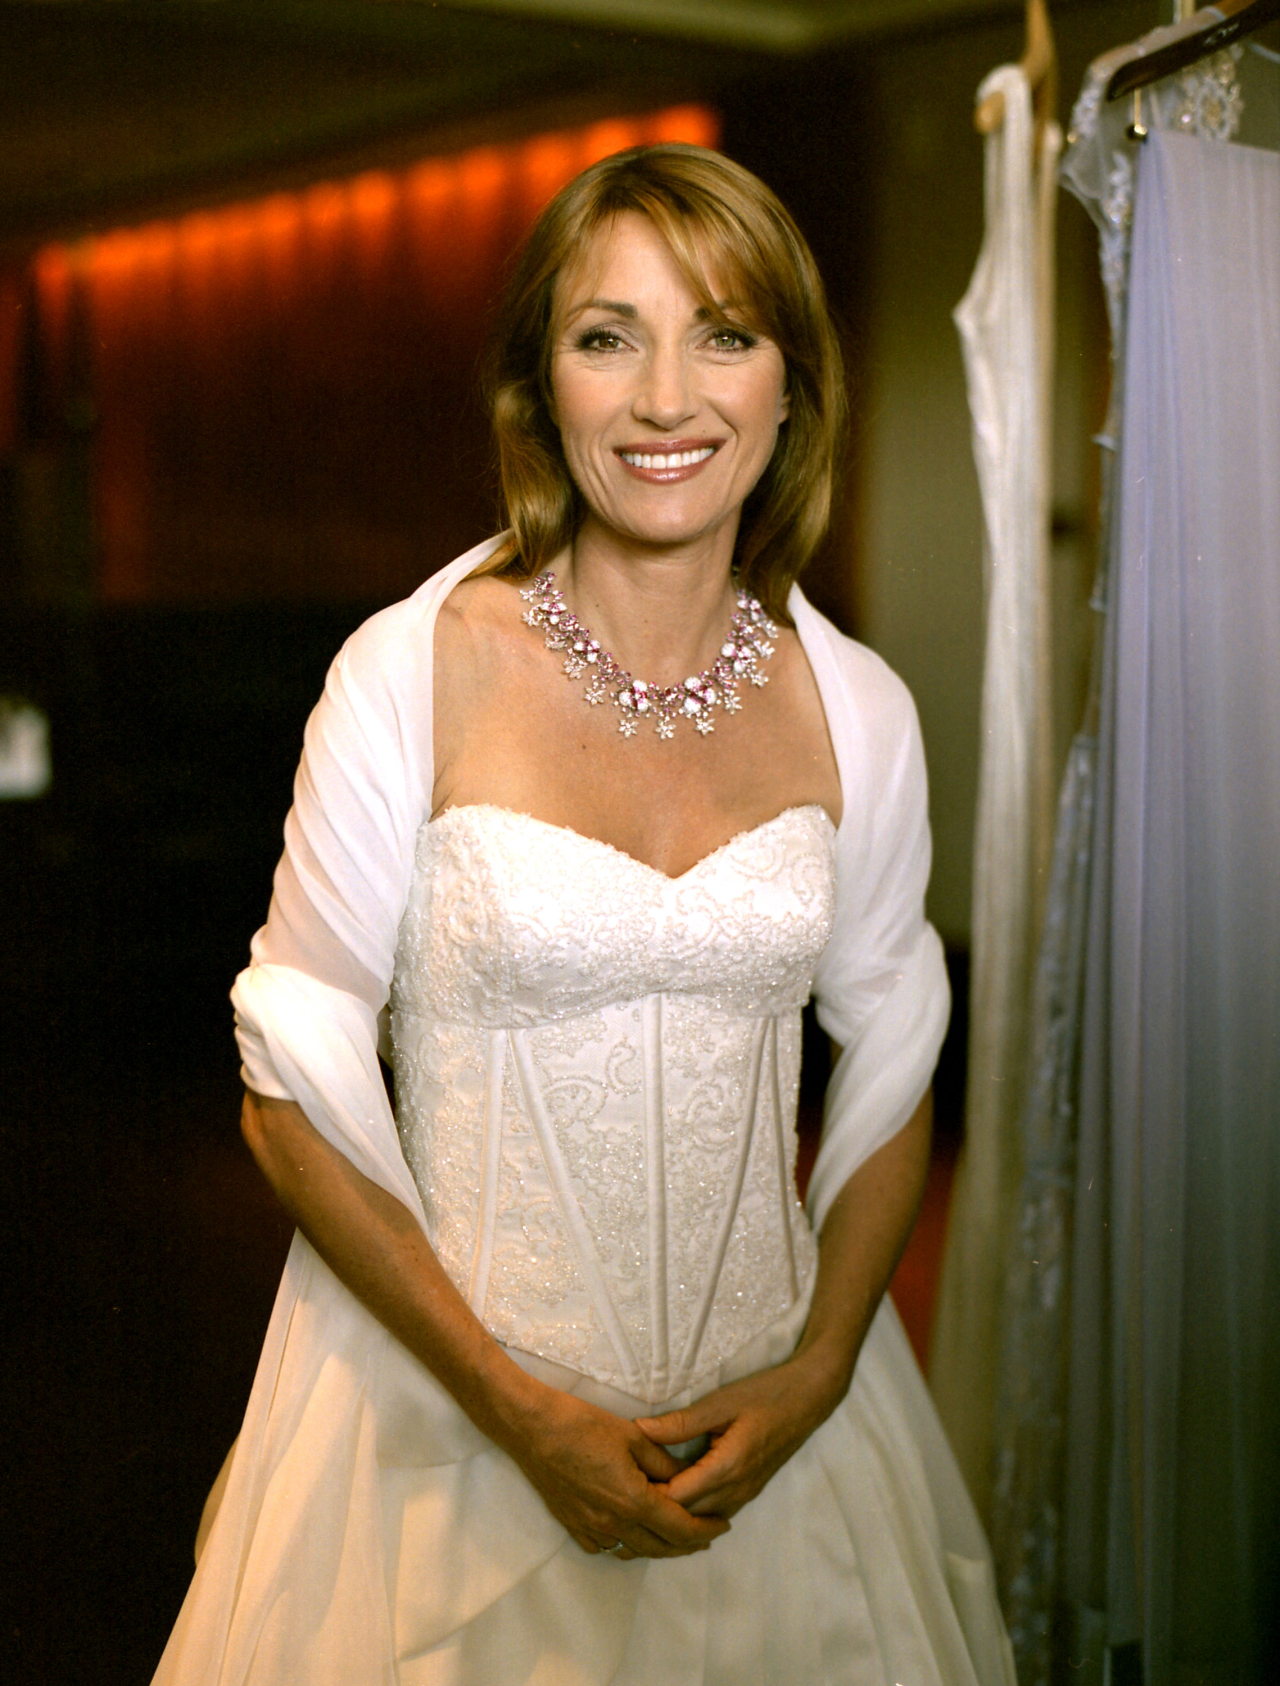 """A portrait I took of Golden Globe and Emmy Award winning actress, Jane Seymour. She has also been awarded The Order of the British Empire (OBE). Most notable silver screen appearances have been as the """"James Bond Girl"""" Solitaire in """"Live and Let Die"""" and also on  East of Eden.     Shot with a Contax 645. ©Victor Spinelli"""